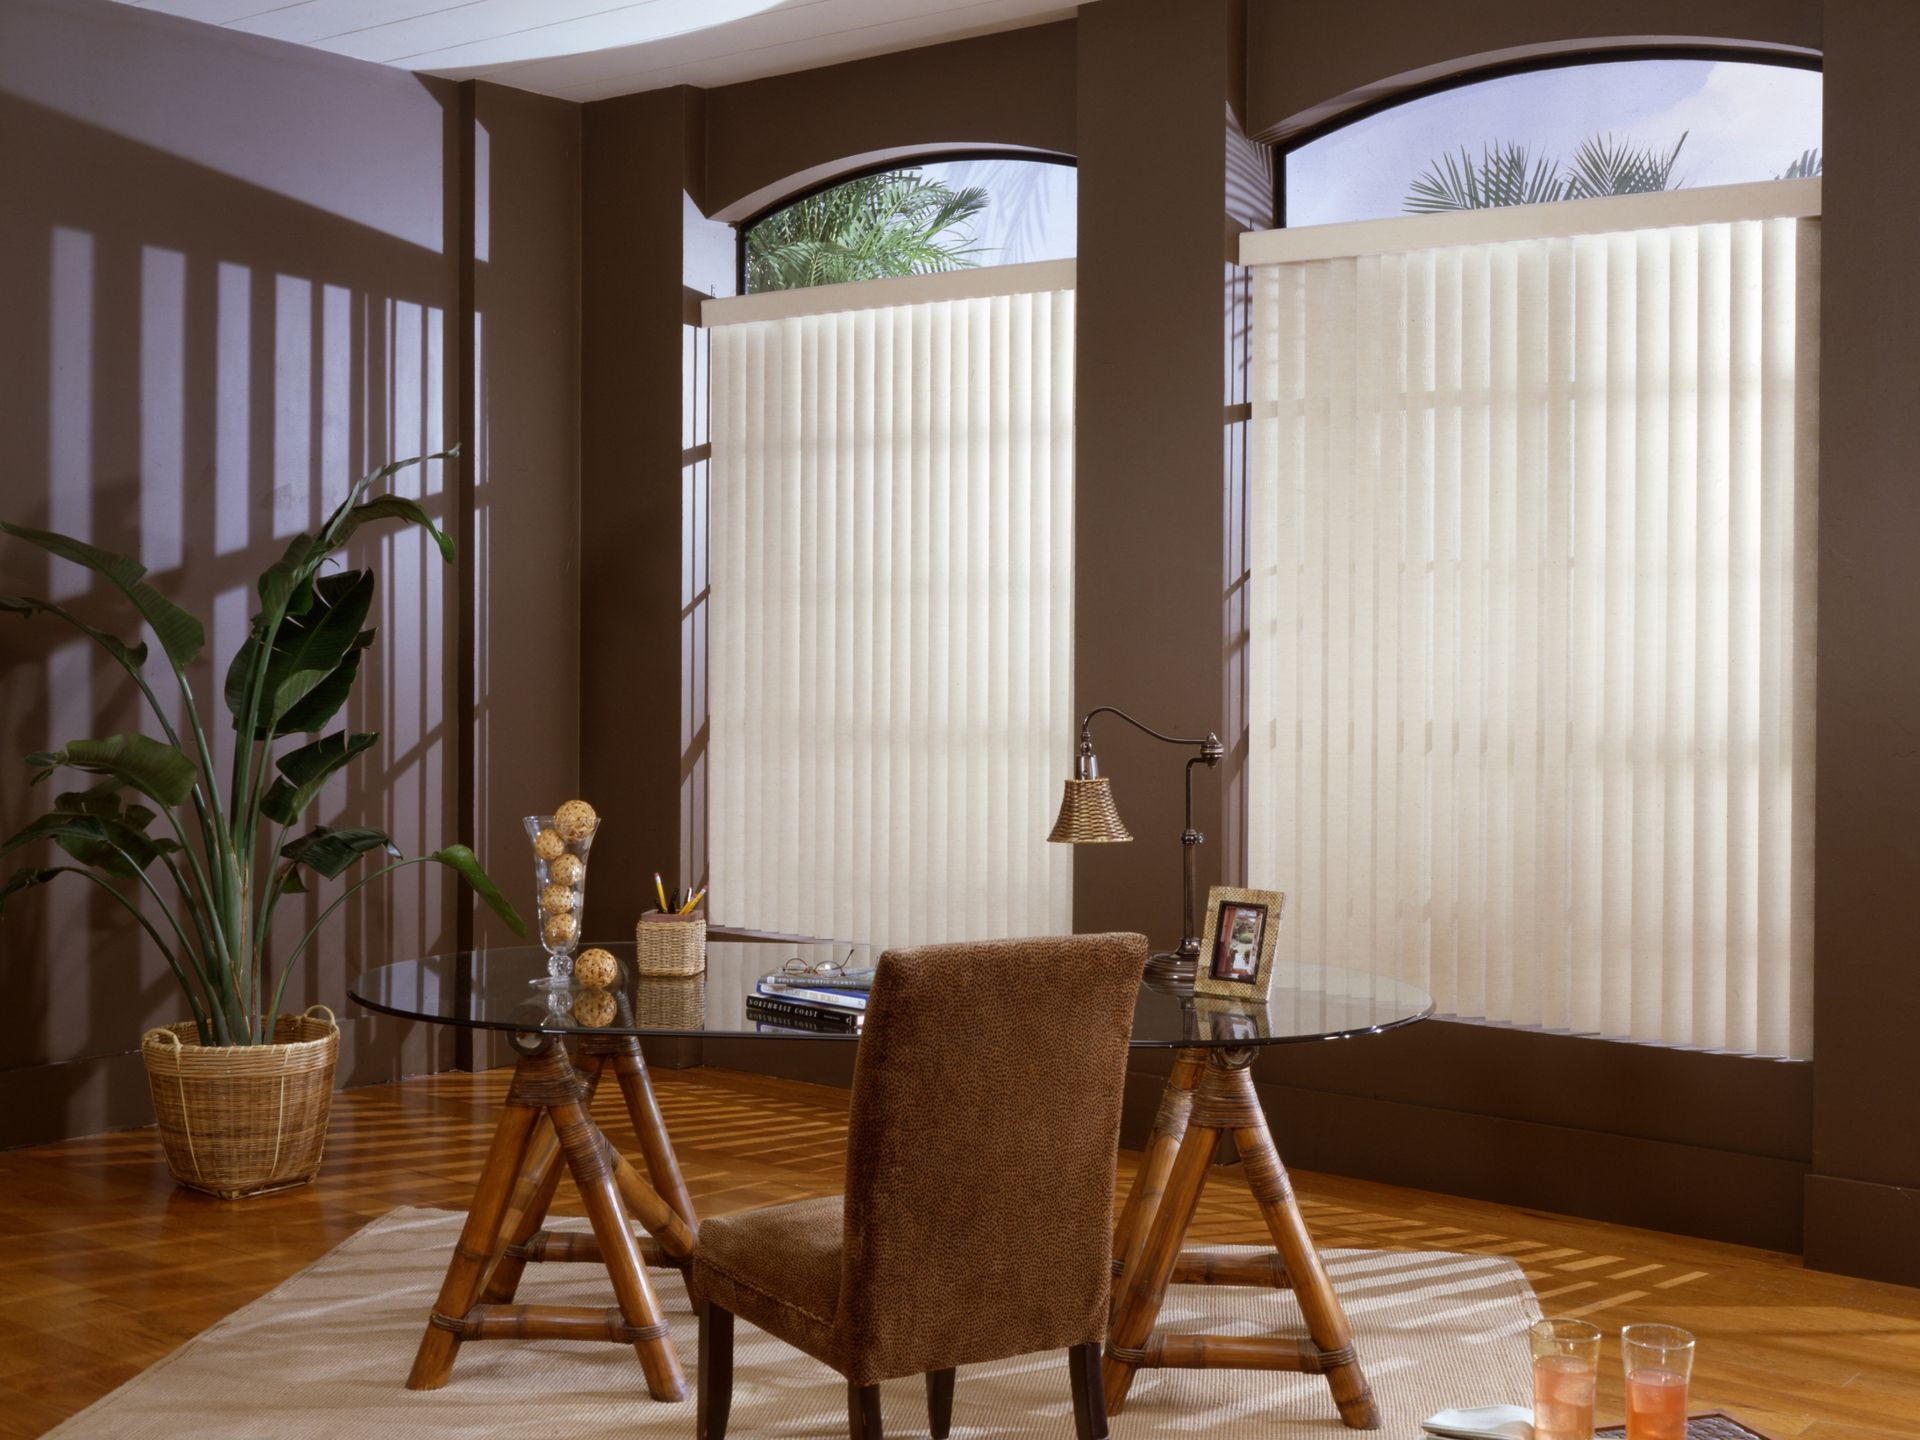 6 Alternatives To Lace Curtains That Will Make Your Windows Pop Stoneside